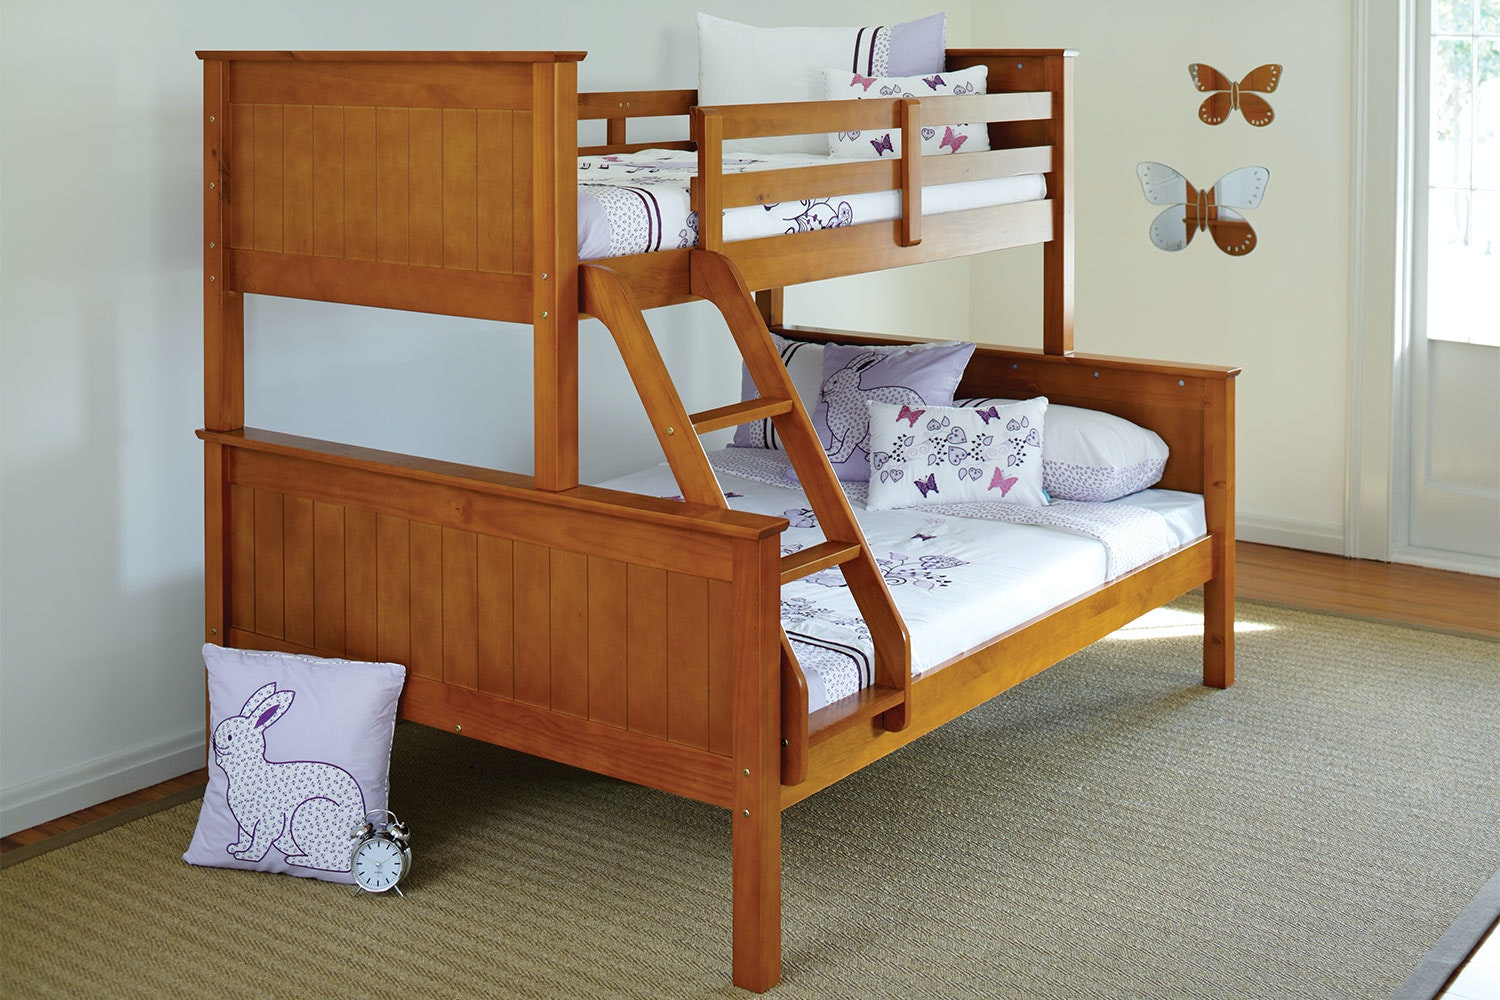 Selena Duo Bunk Bed Frame By Nero Furniture Harvey Norman New